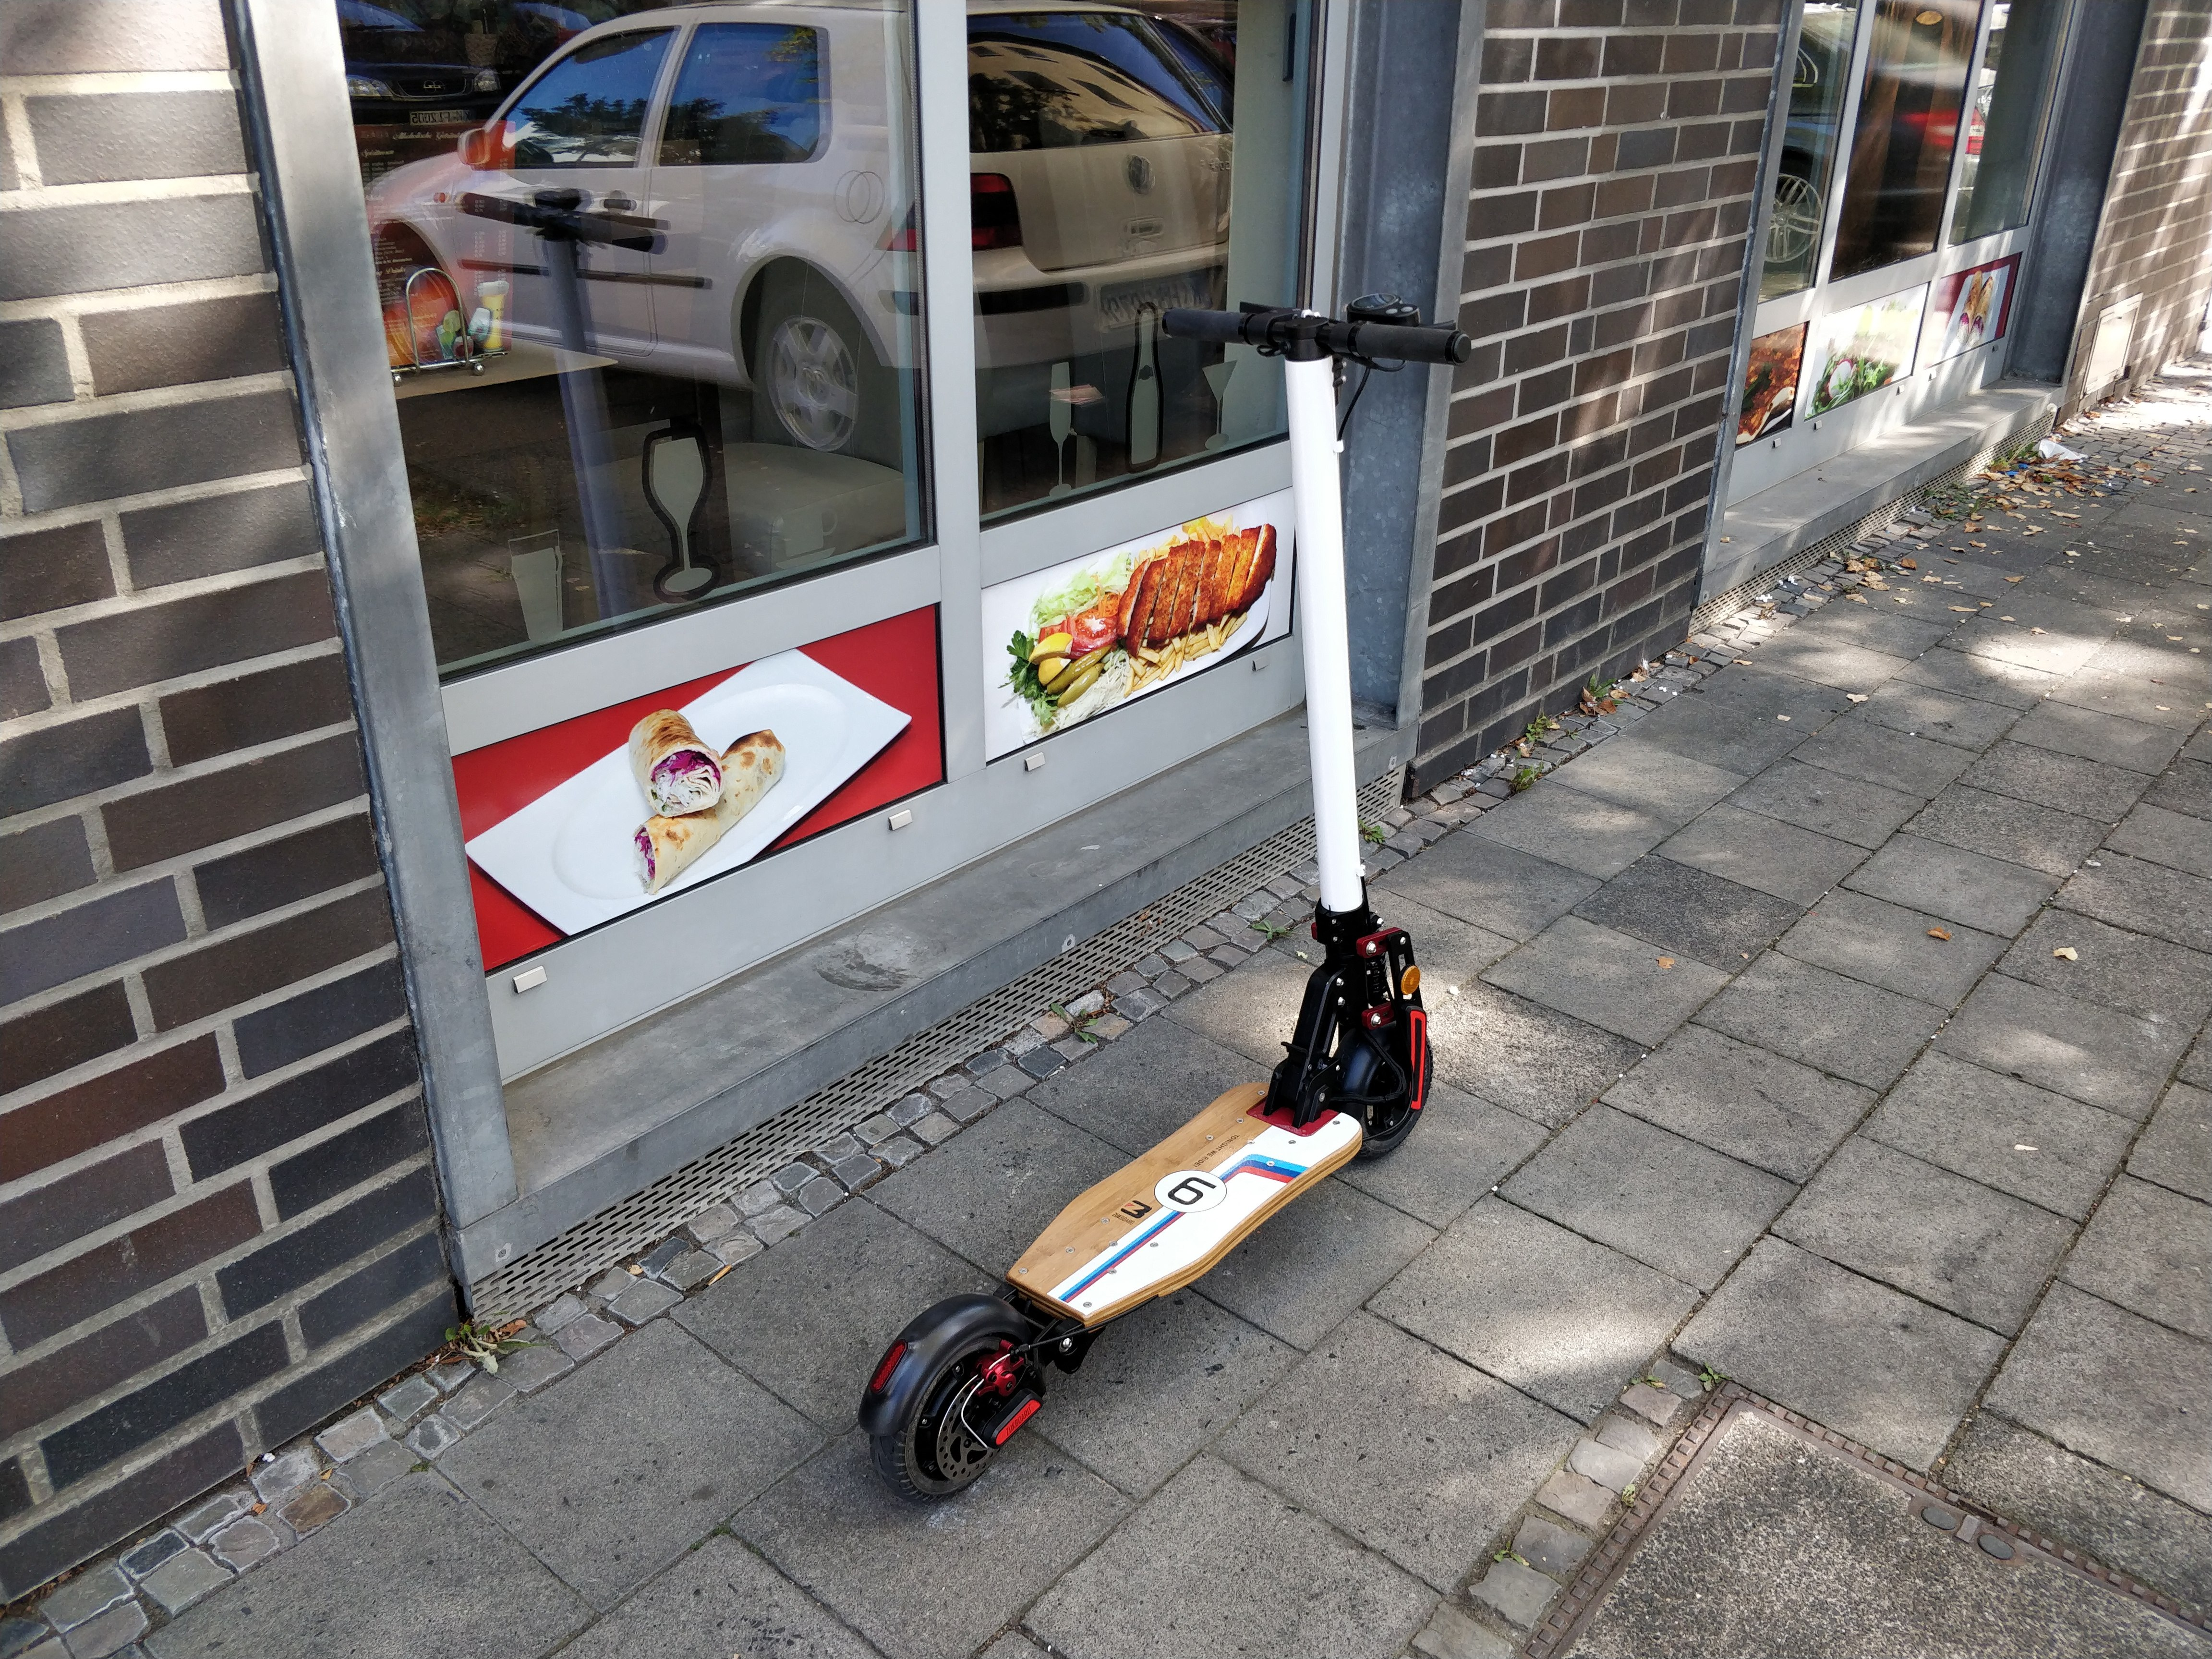 Motorized scooter - The complete information and online sale with